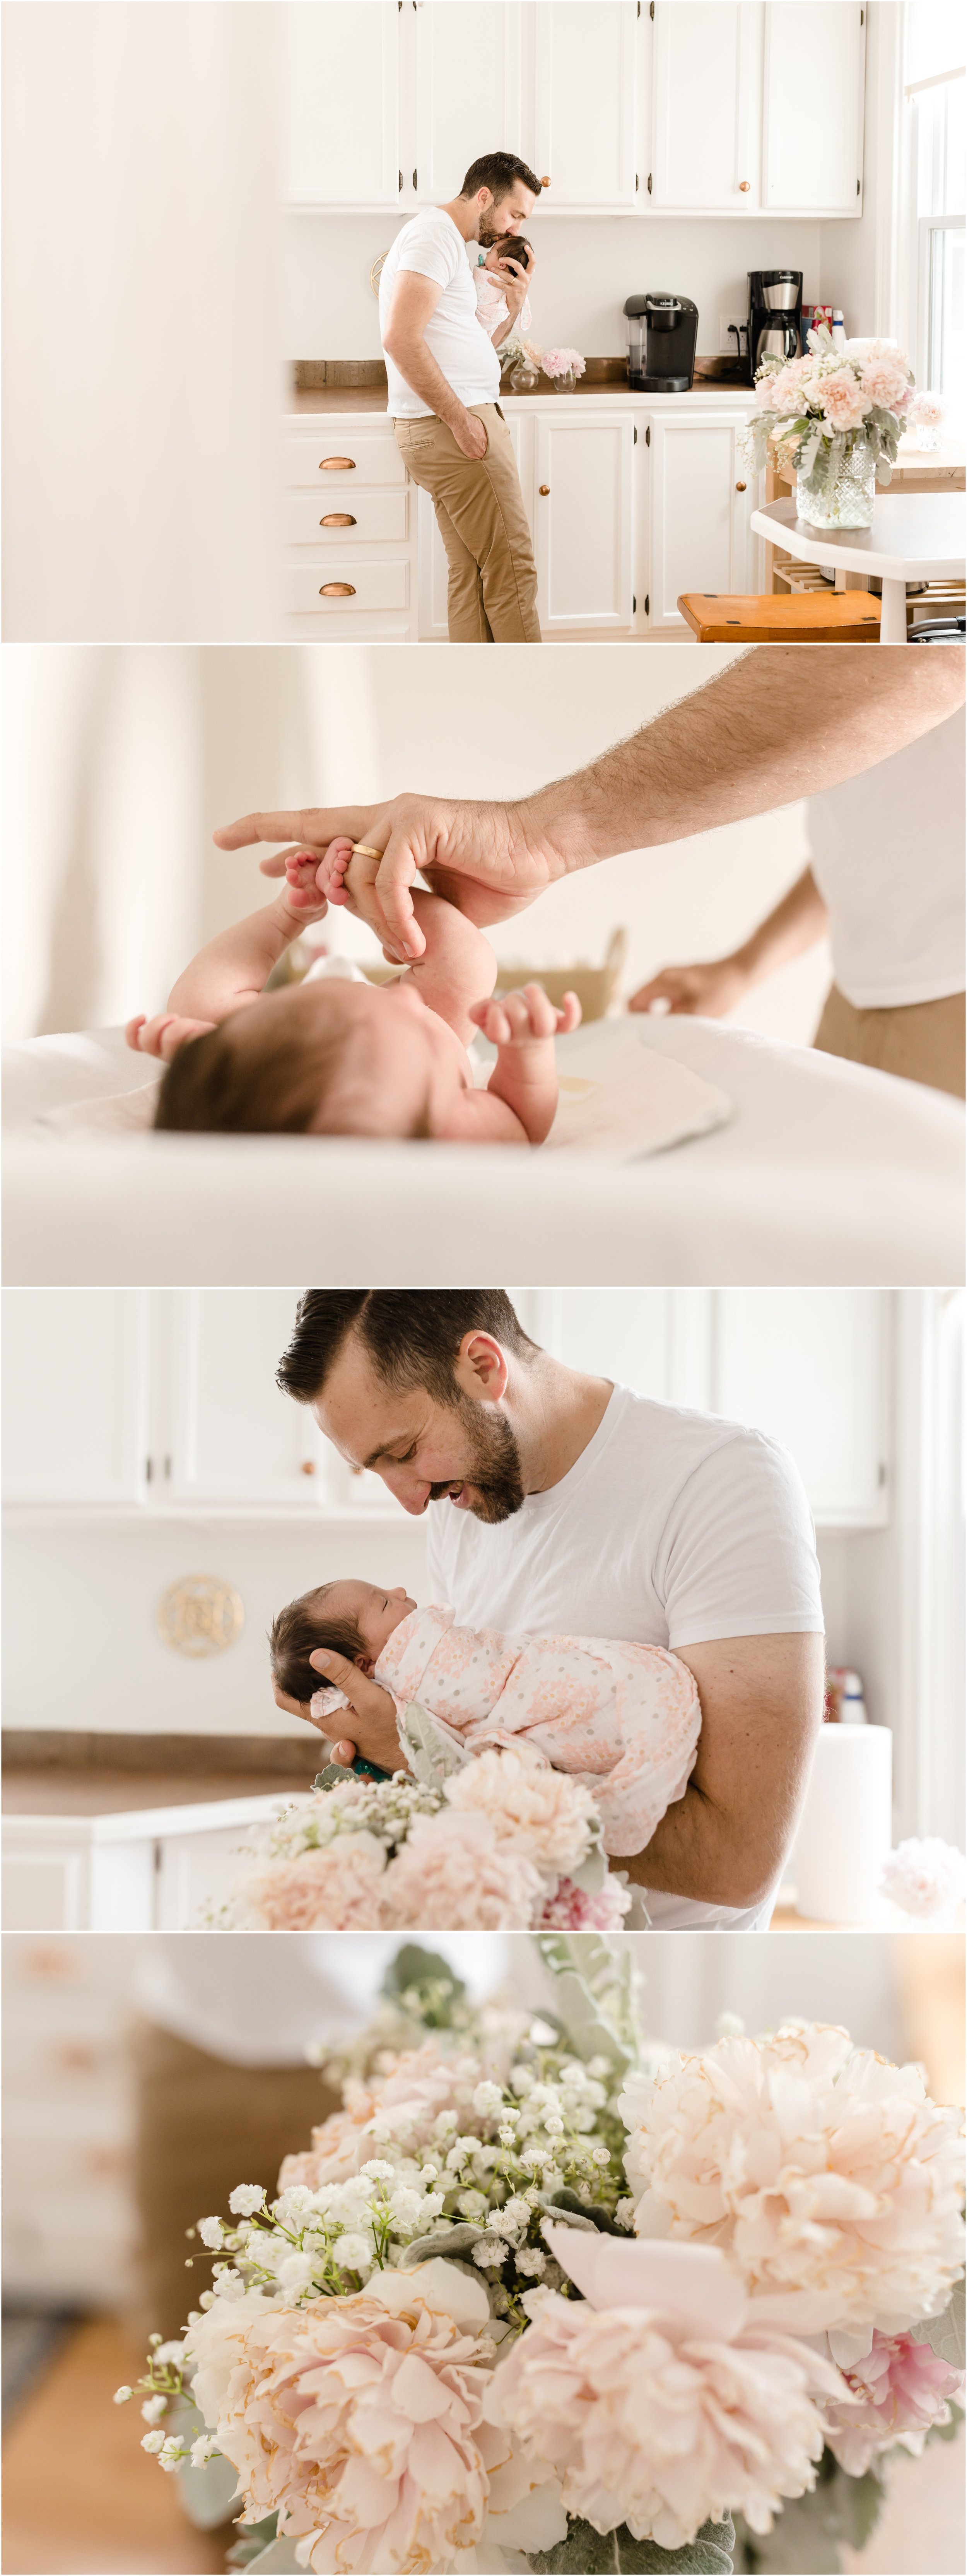 old irving park chicago family newborn lifestyle photographer jenny grimm